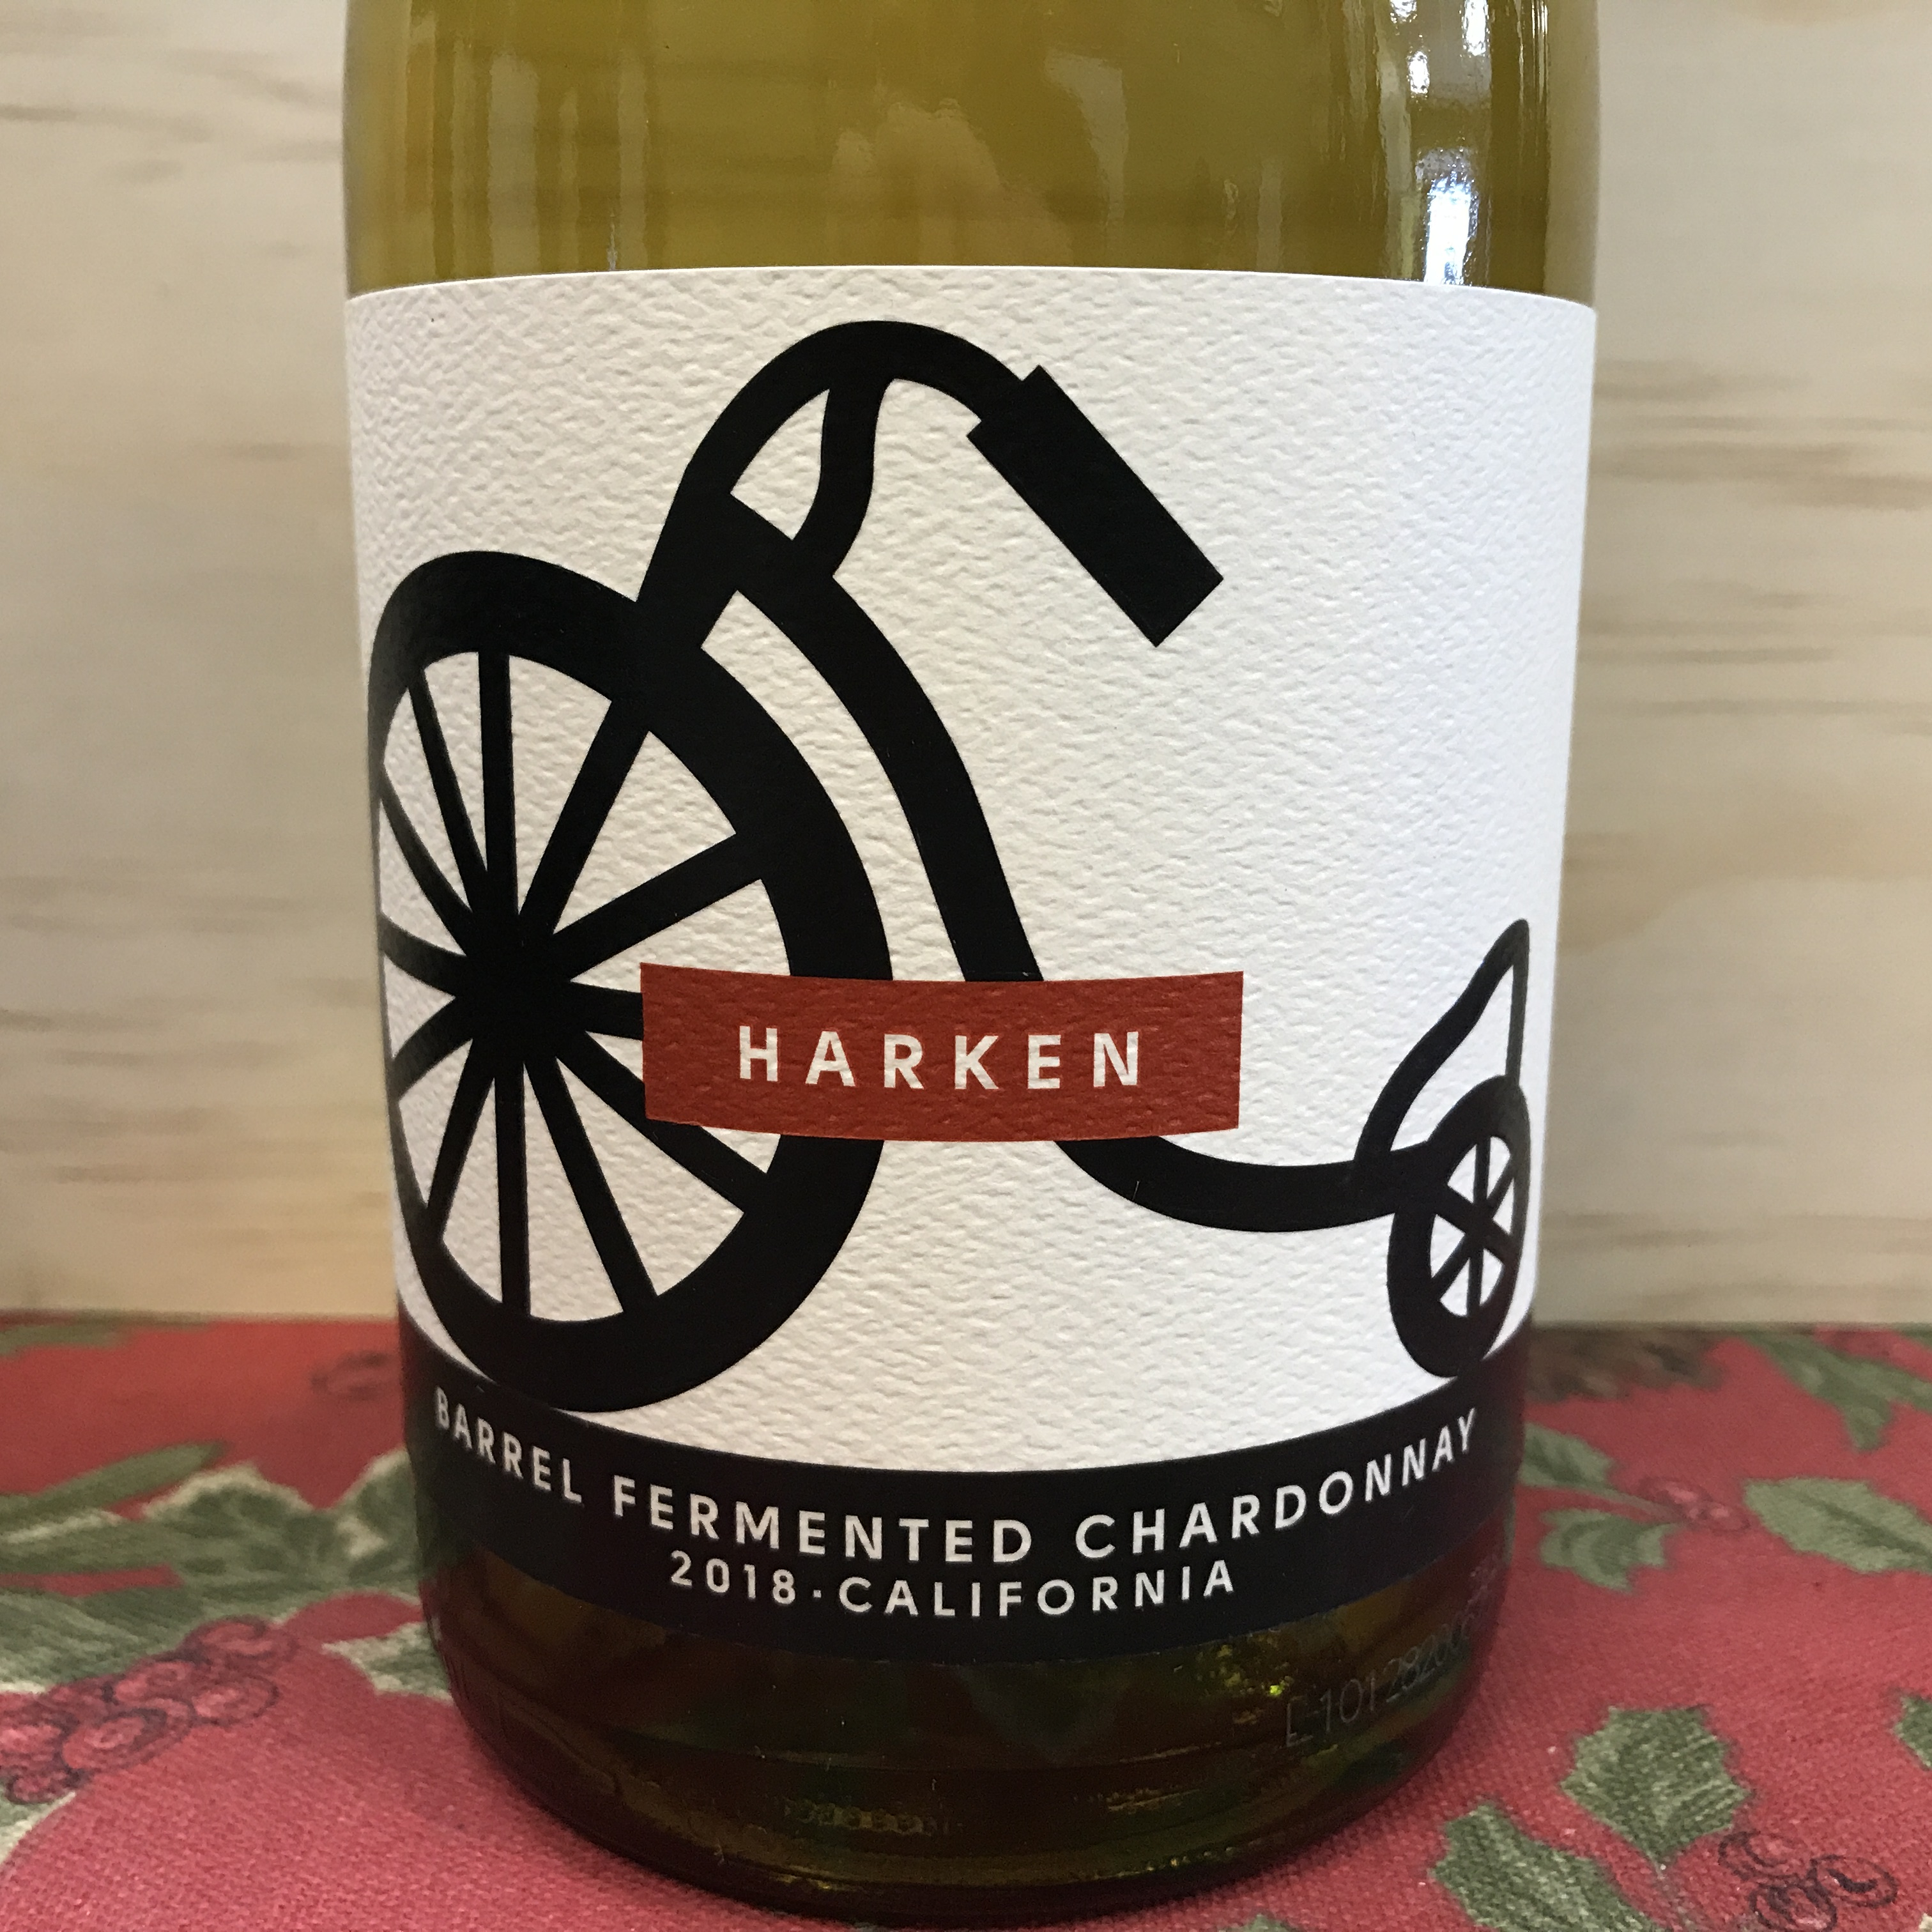 Harken Barrel Fermented Chardonnay 2018 California